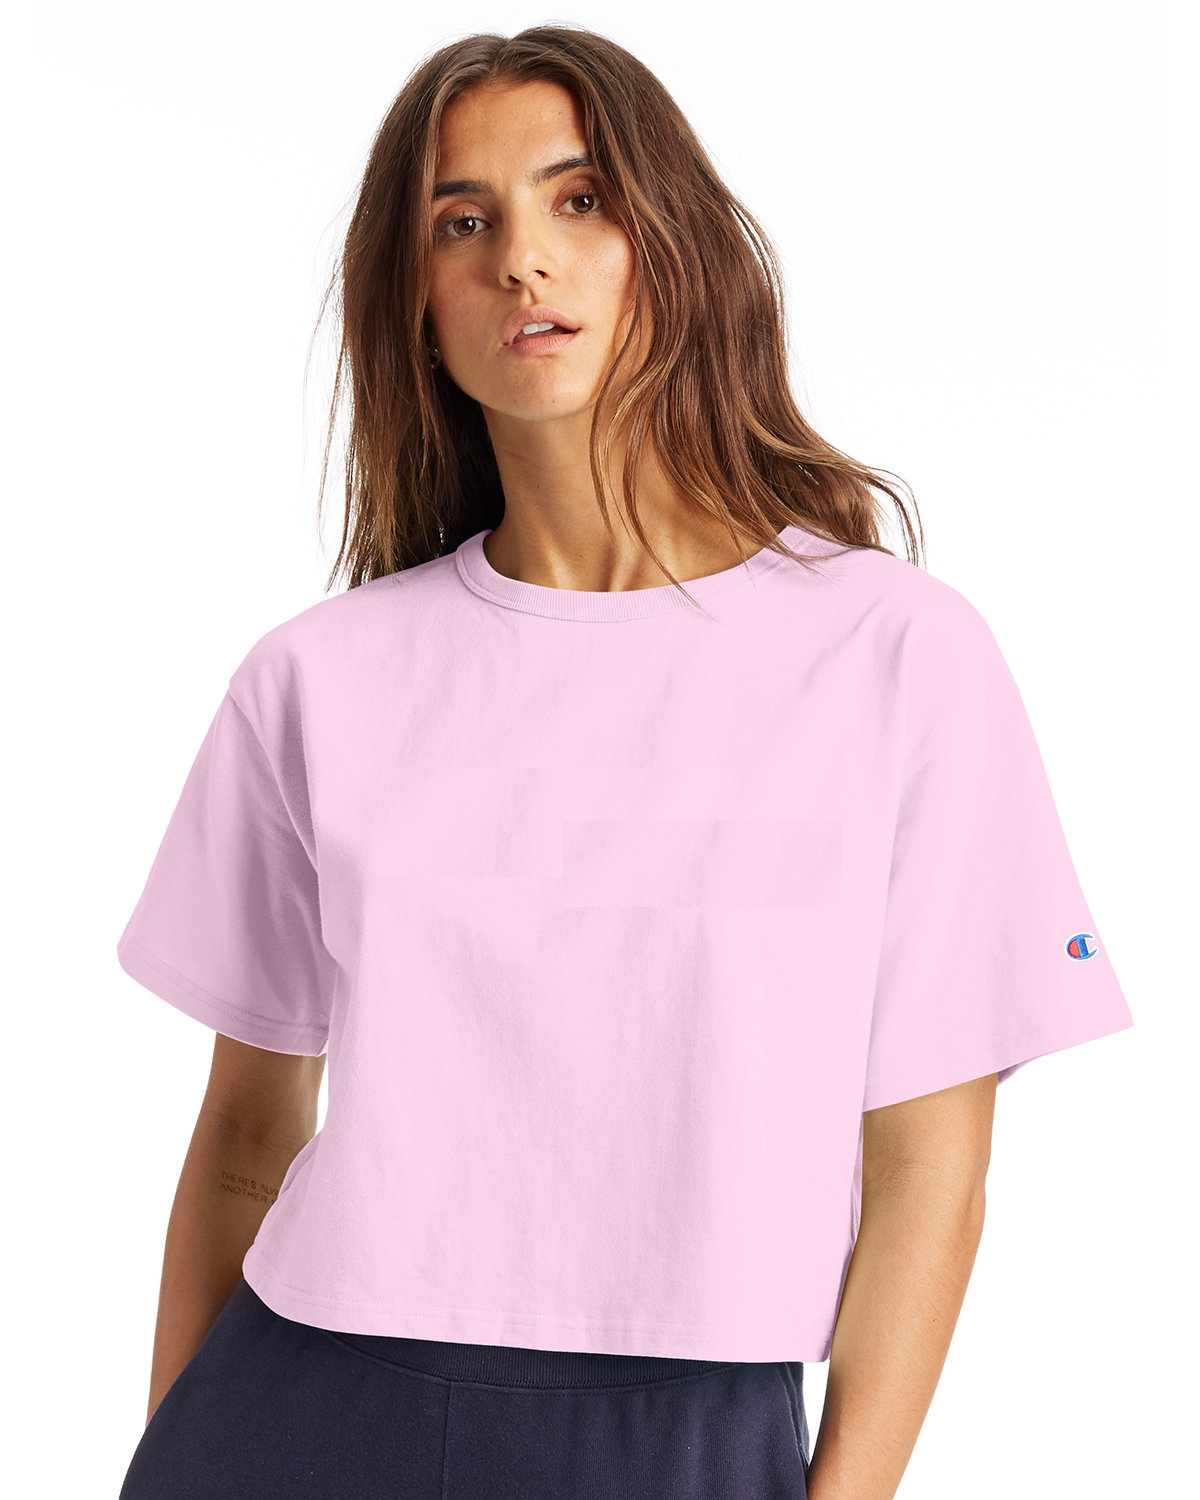 Champion Ladies' Cropped Heritage T-Shirt PINK CANDY